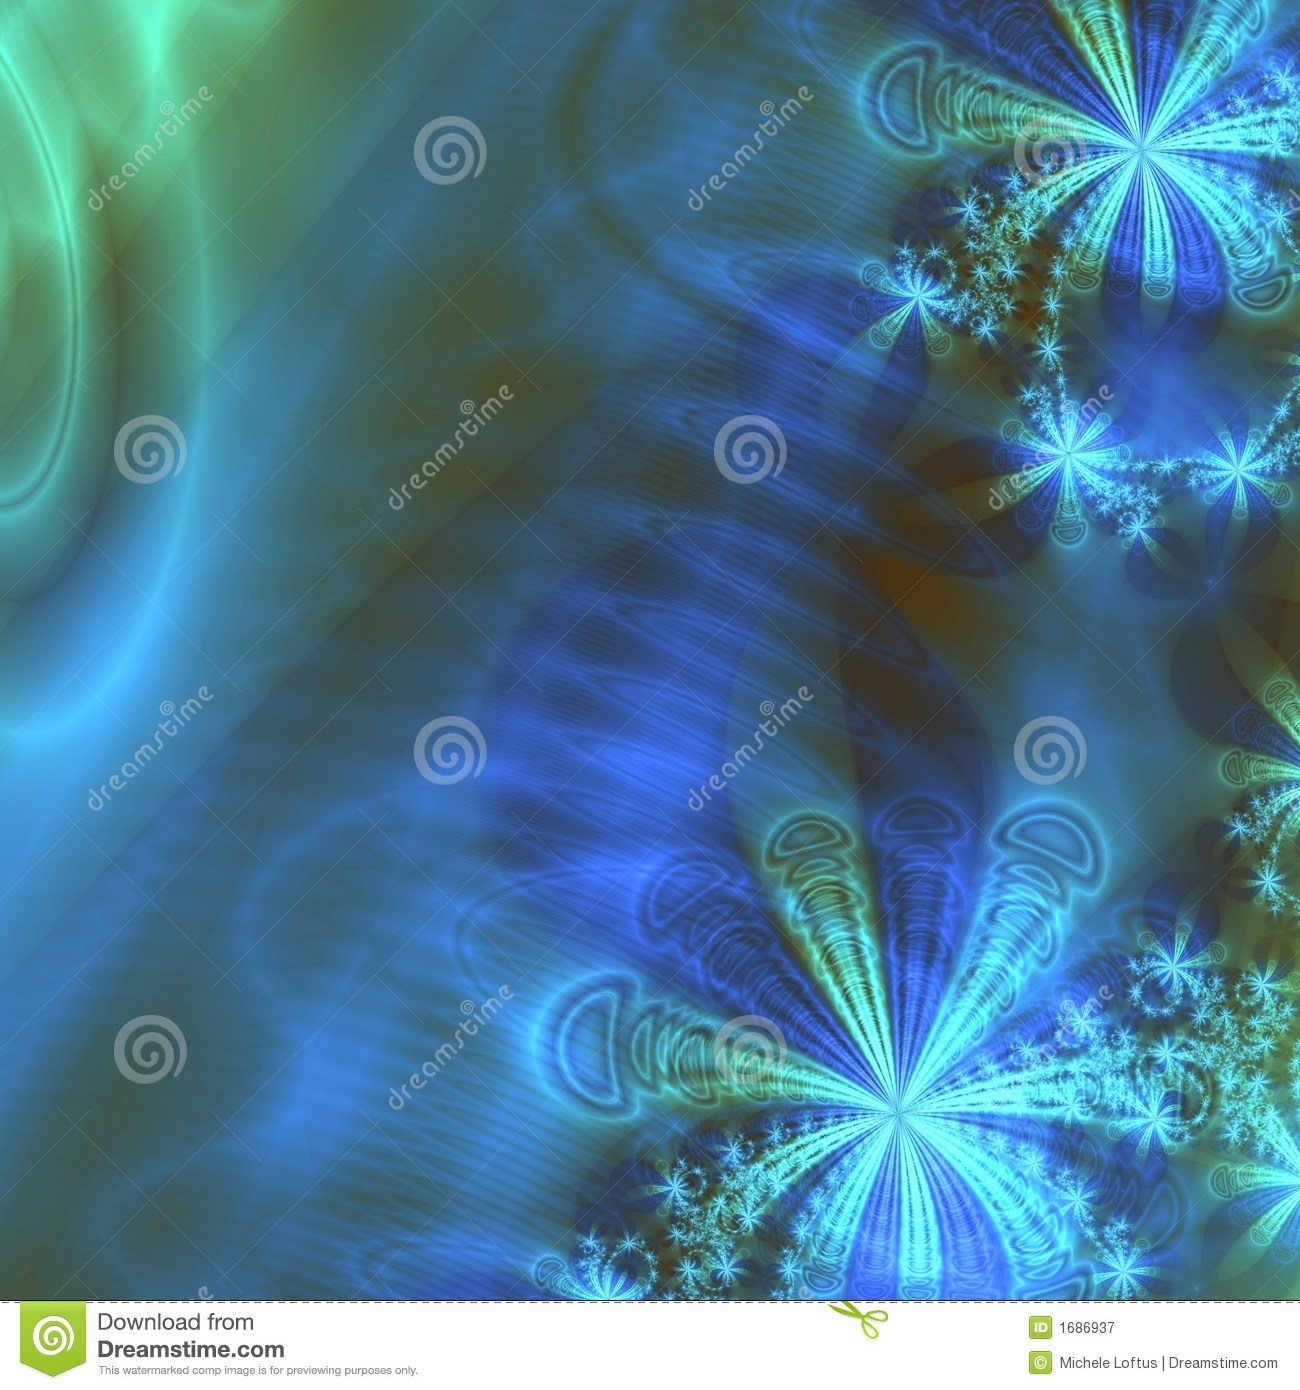 Aqua, Blue And Green Abstract Background Design Template